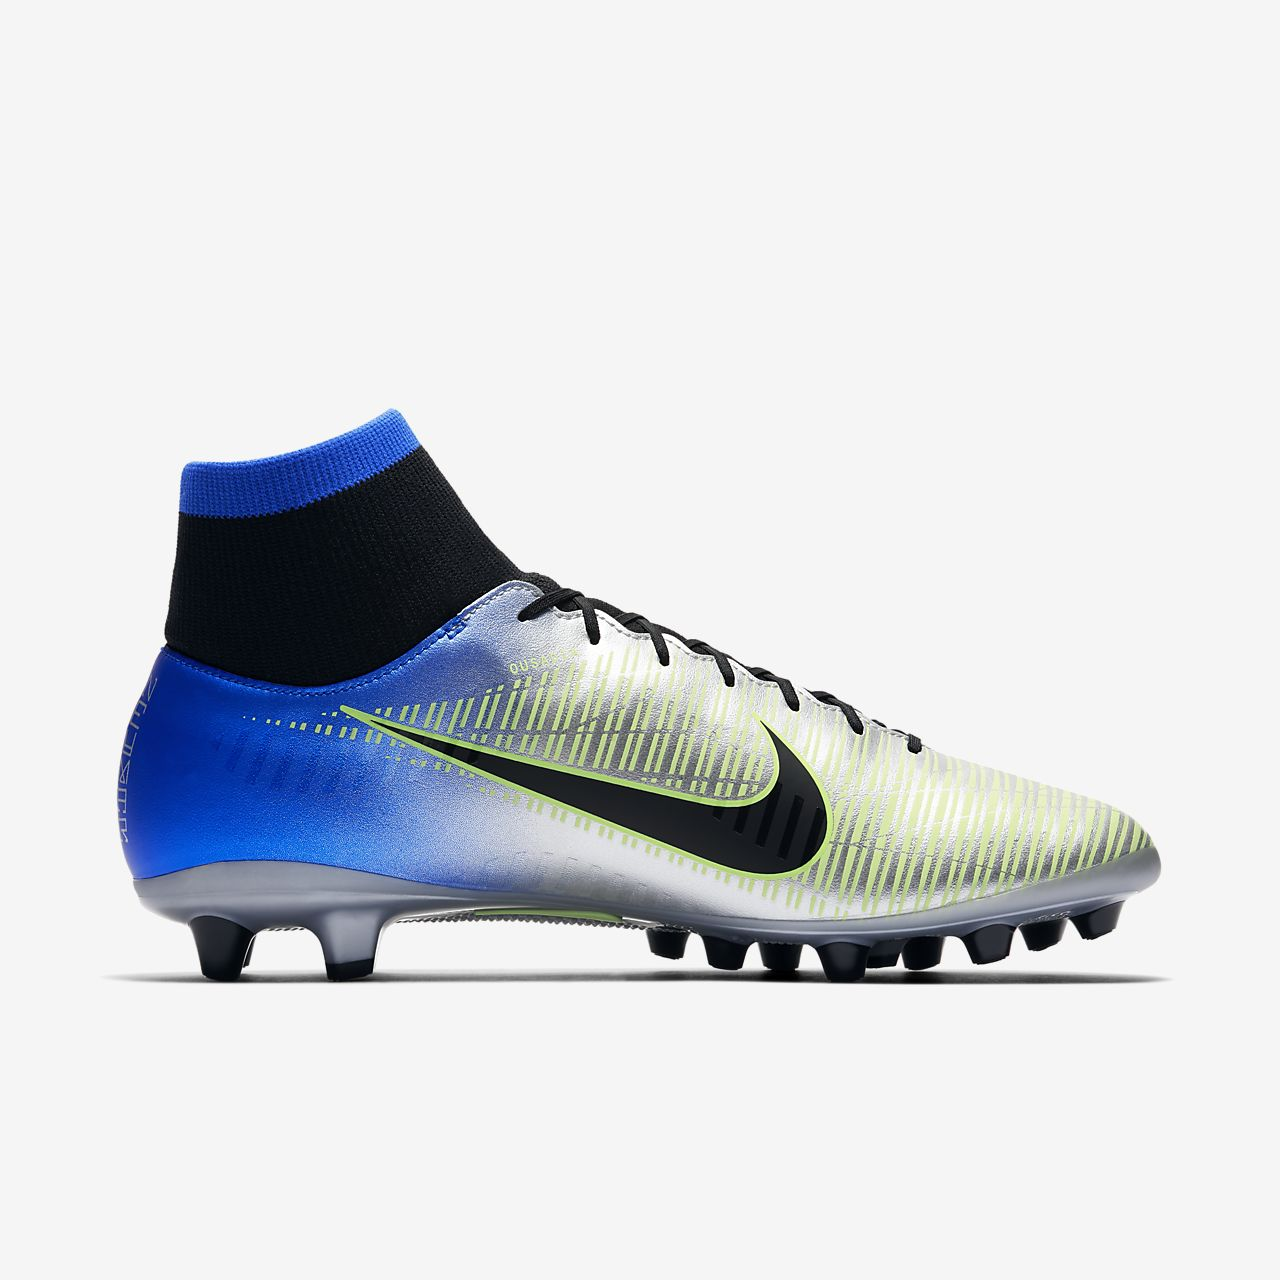 ... Nike Mercurial Victory VI Dynamic Fit Neymar AG-PRO Artificial-Grass  Football Boot